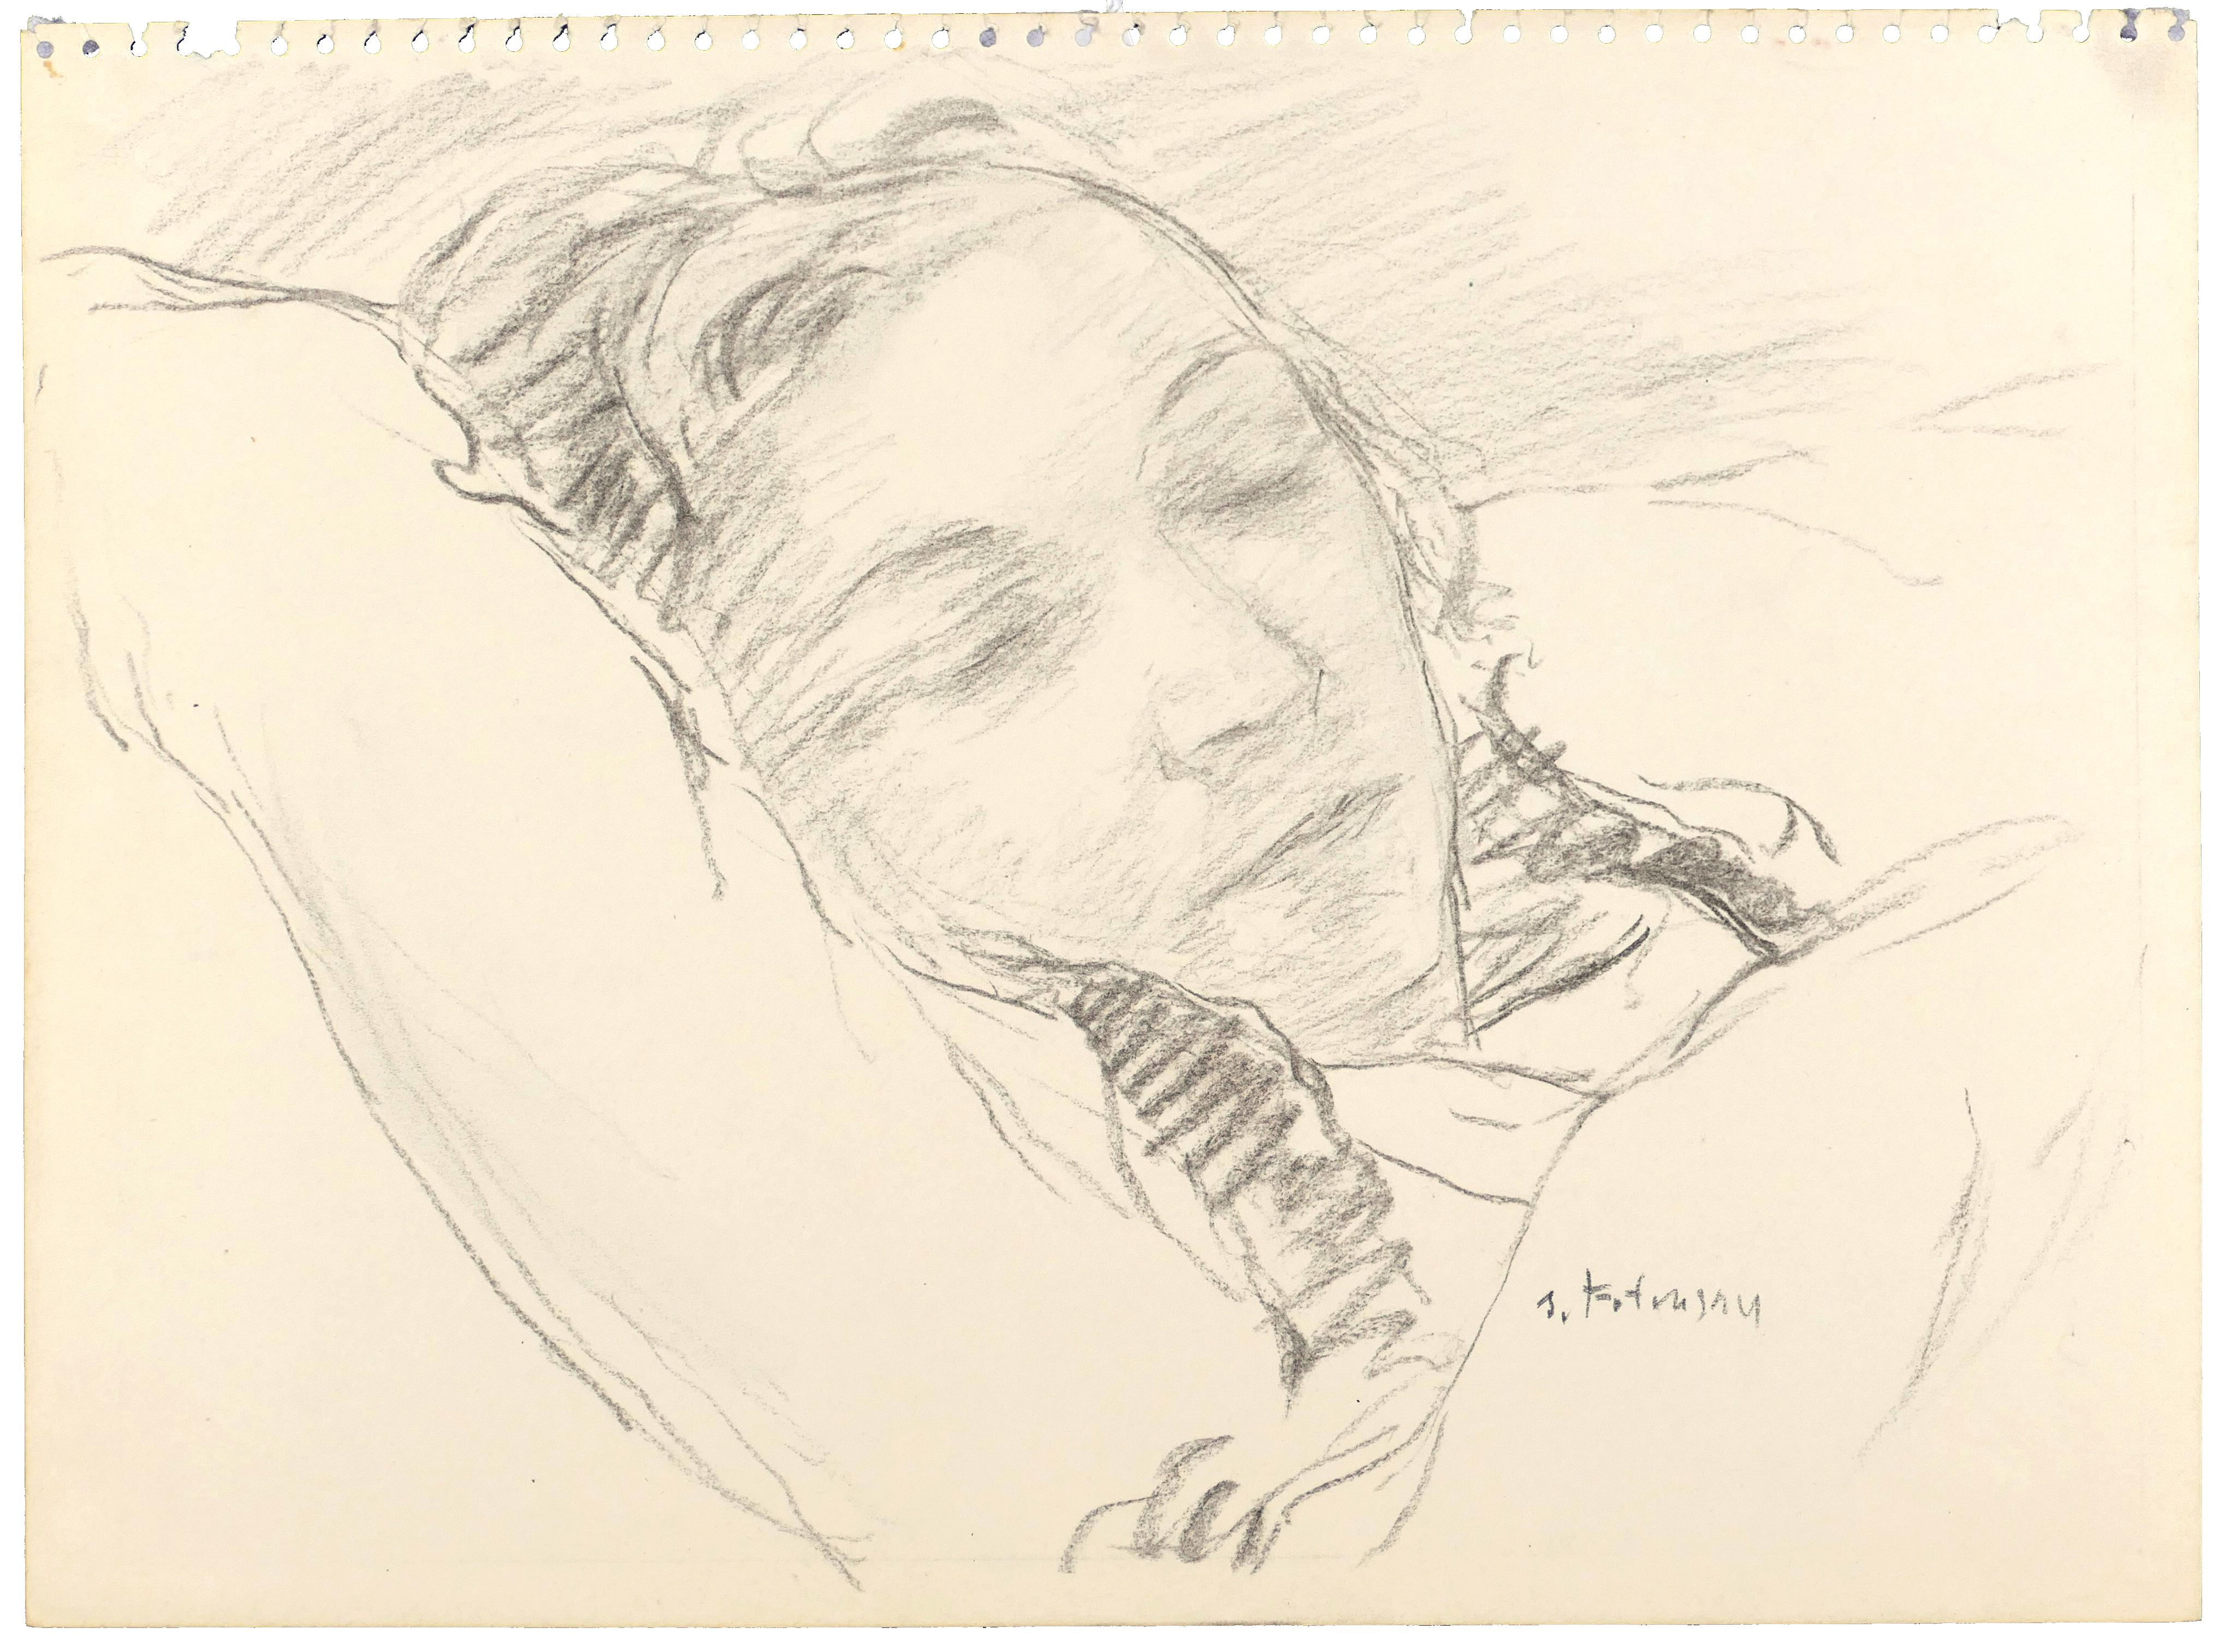 Sleeping Girl - Charcoal Drawing and watercolor by S. Fontinsky - 1940s